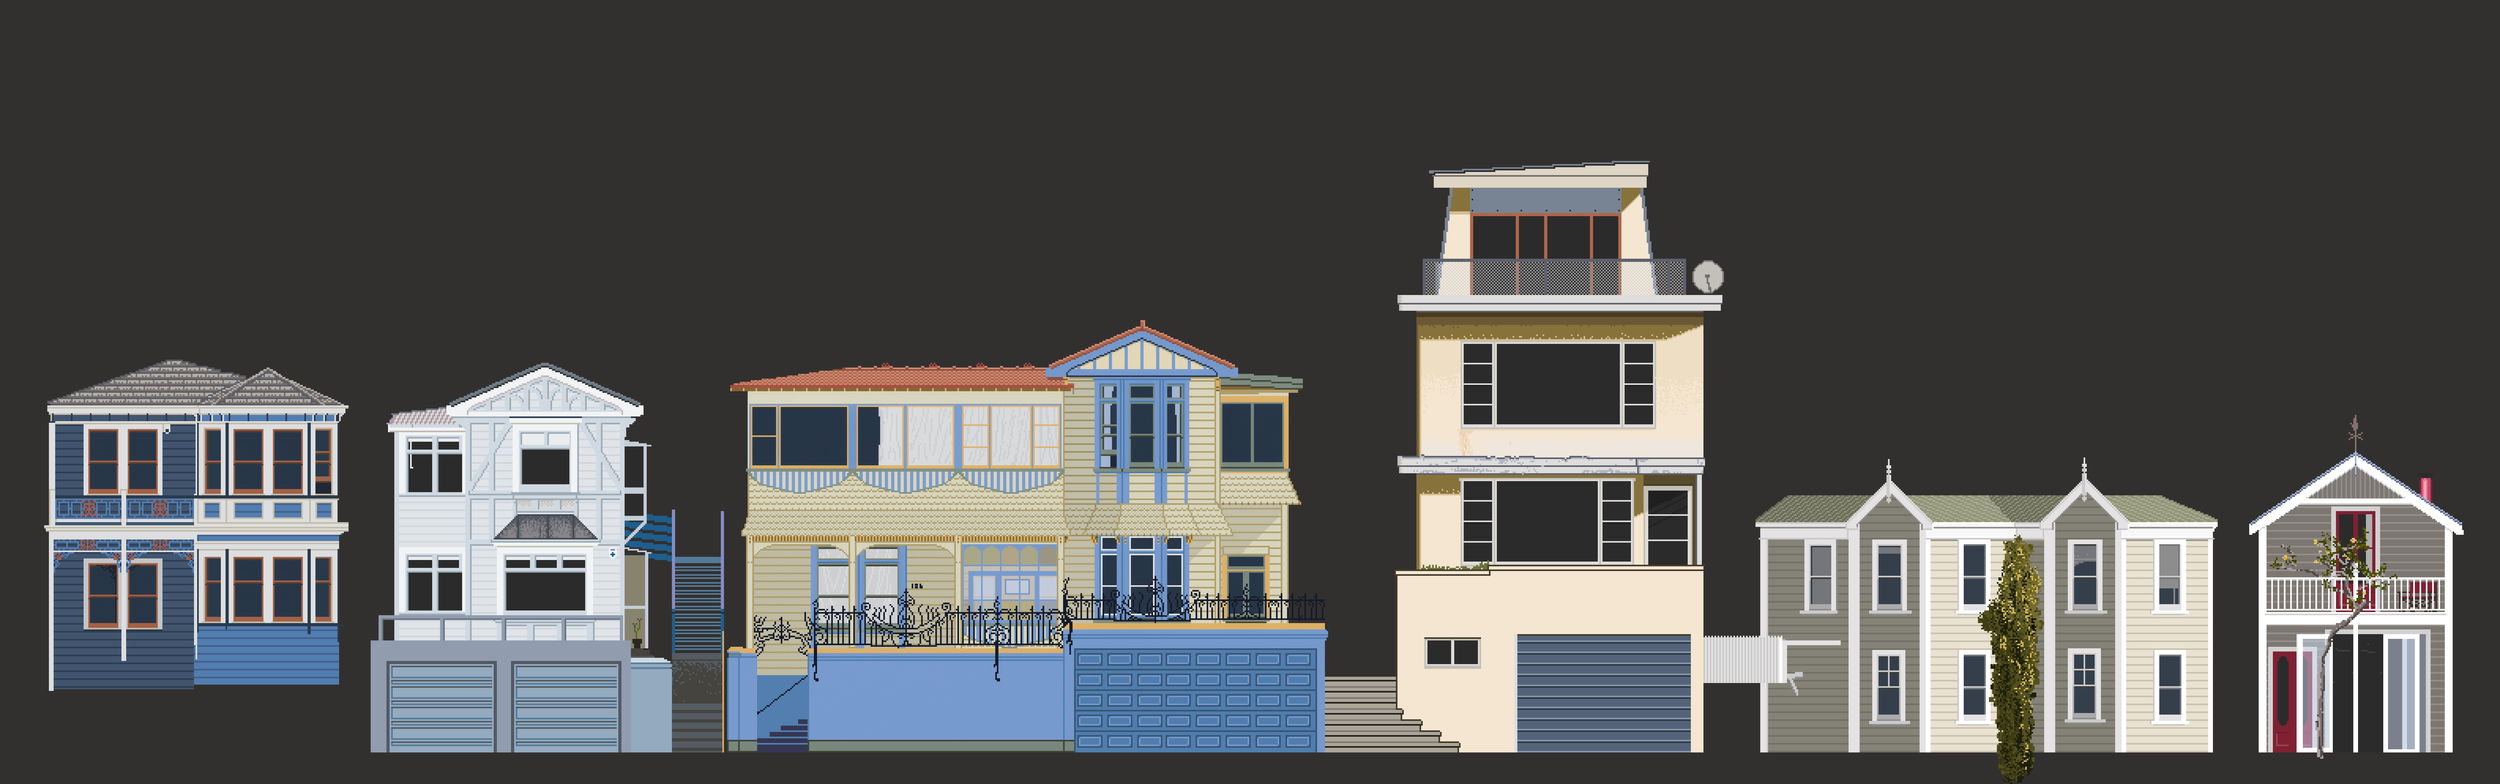 Orential Bay Houses.png